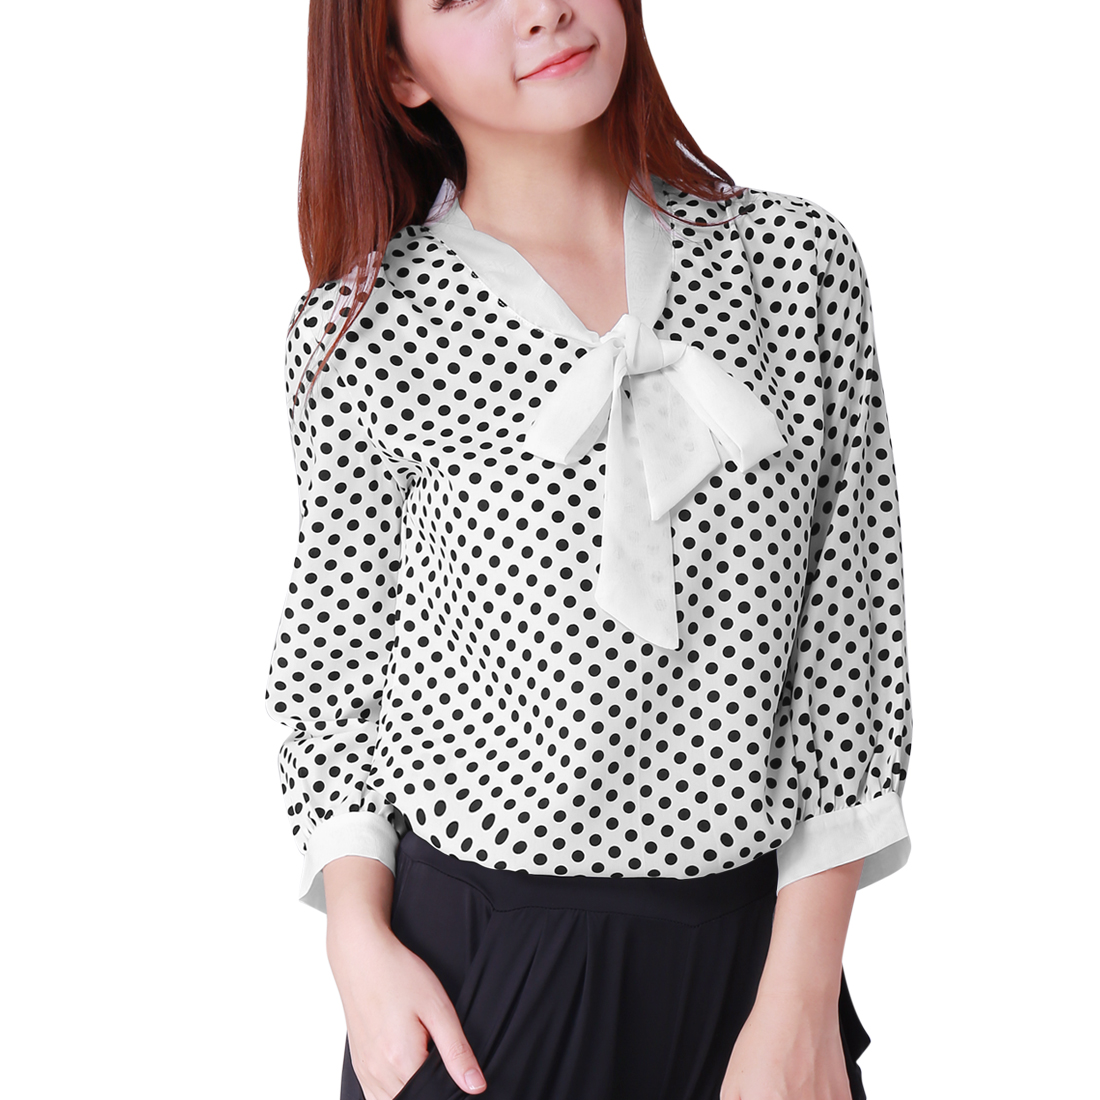 Image of Allegra K Women's Polka Dots 3/4 Elbow Sleeve Dressy Blouse (Size M / 8)